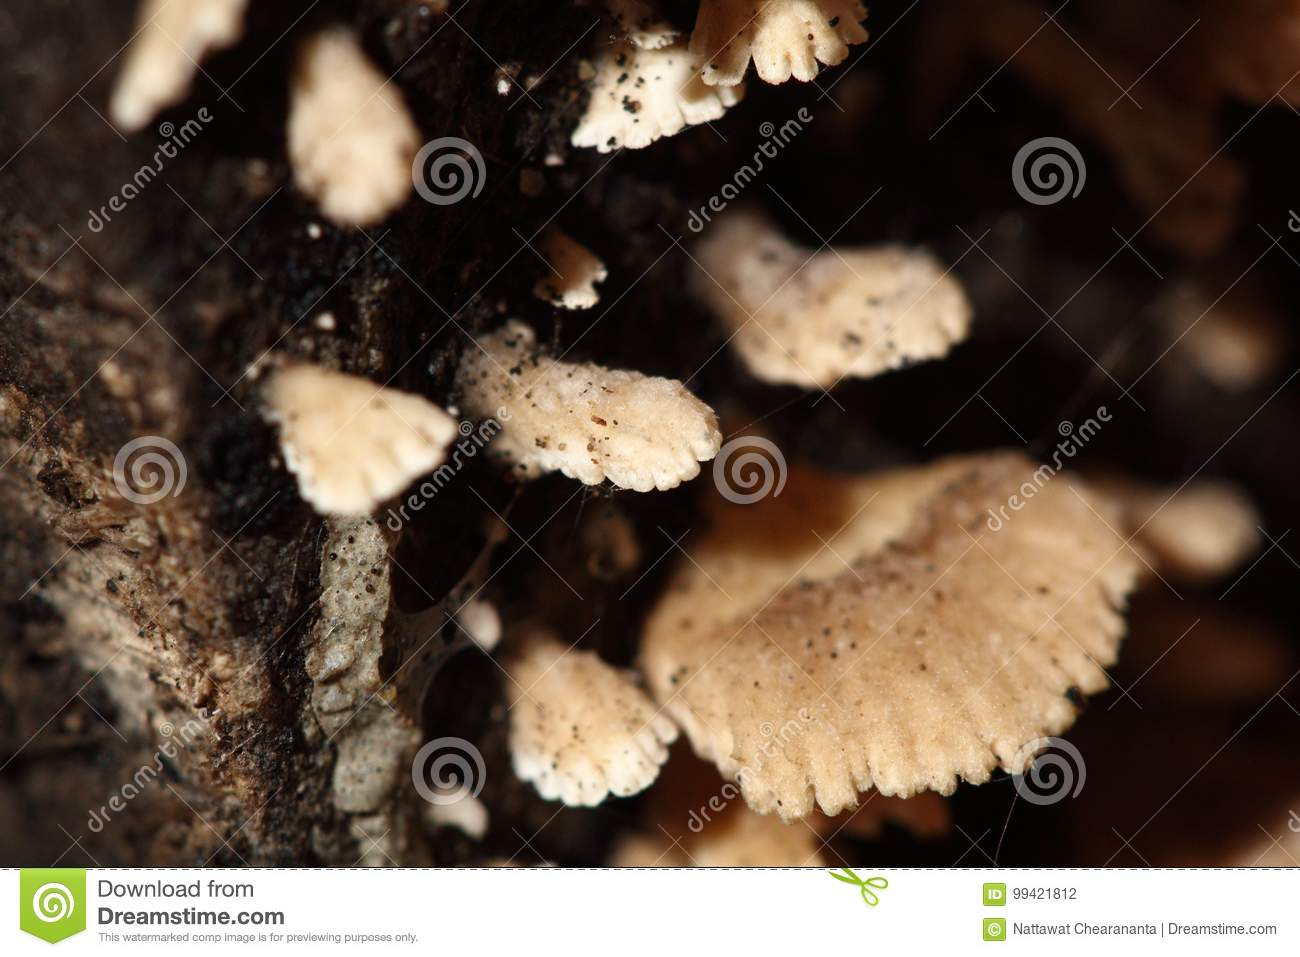 Tiny White Mushroom In Rain Season On Moisture Old Wood On